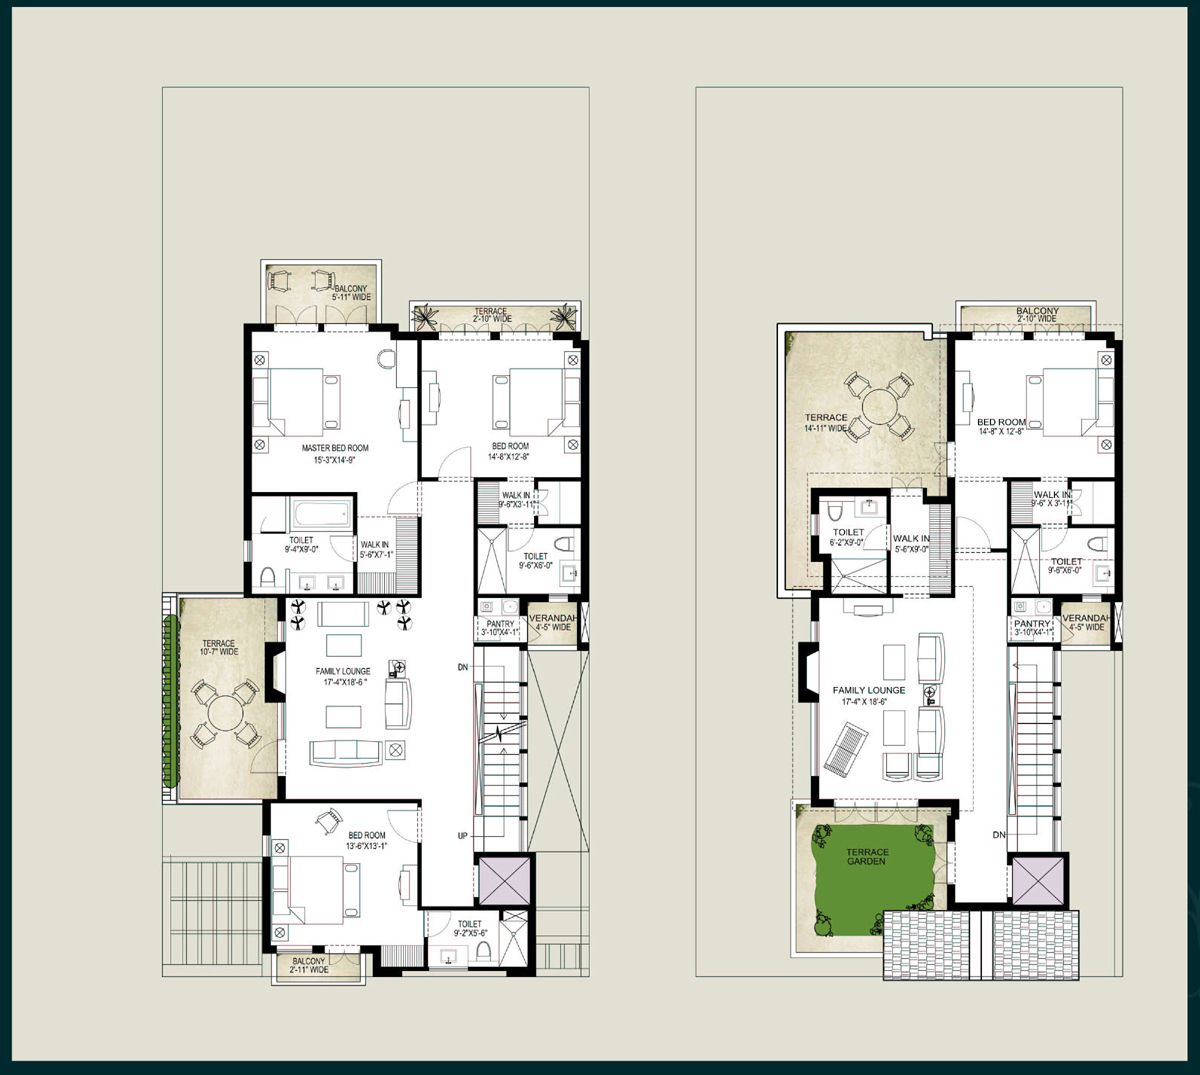 Unusual house designs floor plans house design plans for Unusual house plans